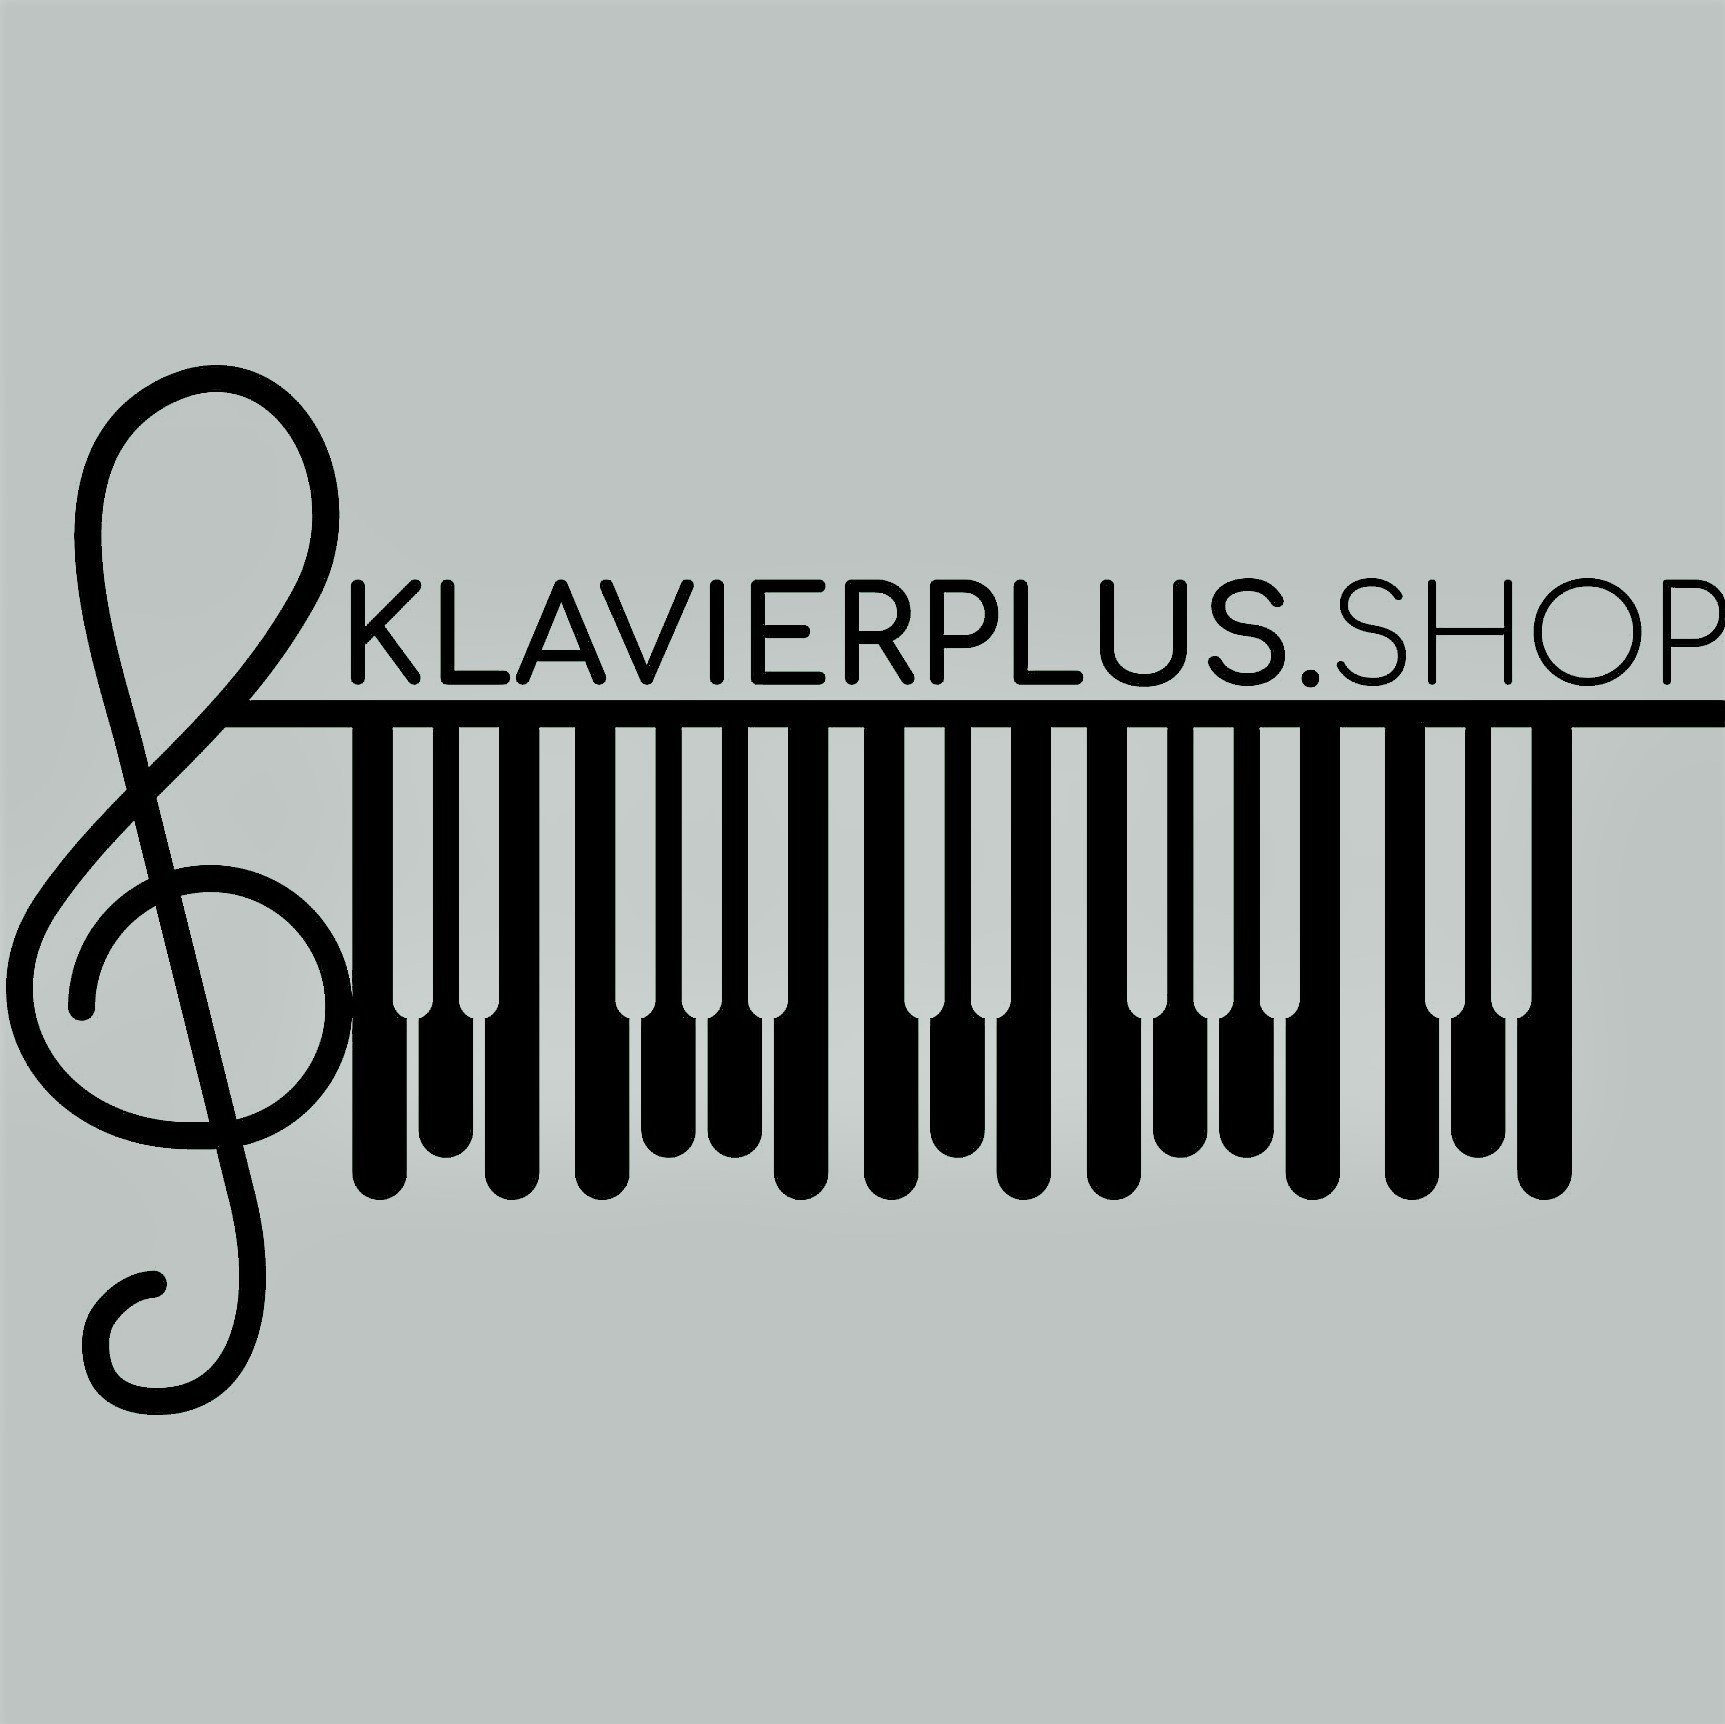 Klavierplus.shop